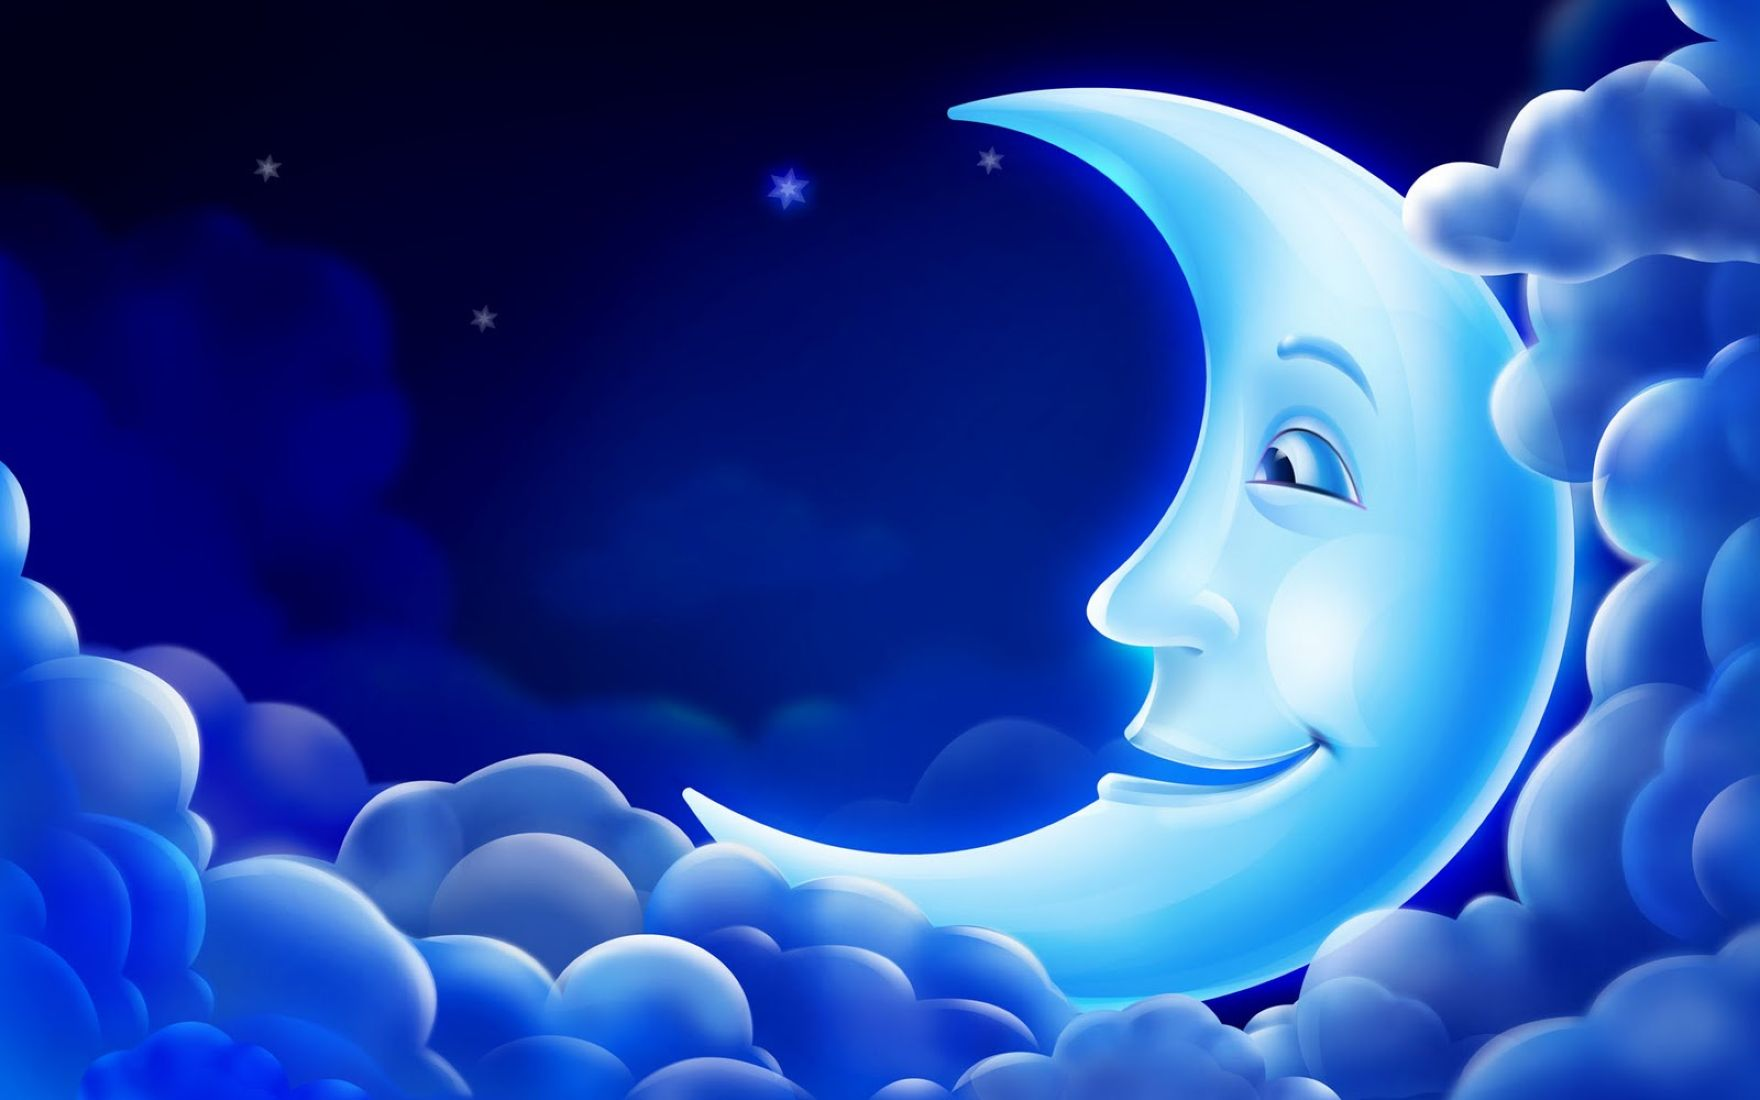 3D Blue Moon Background for Computer Wallpaper